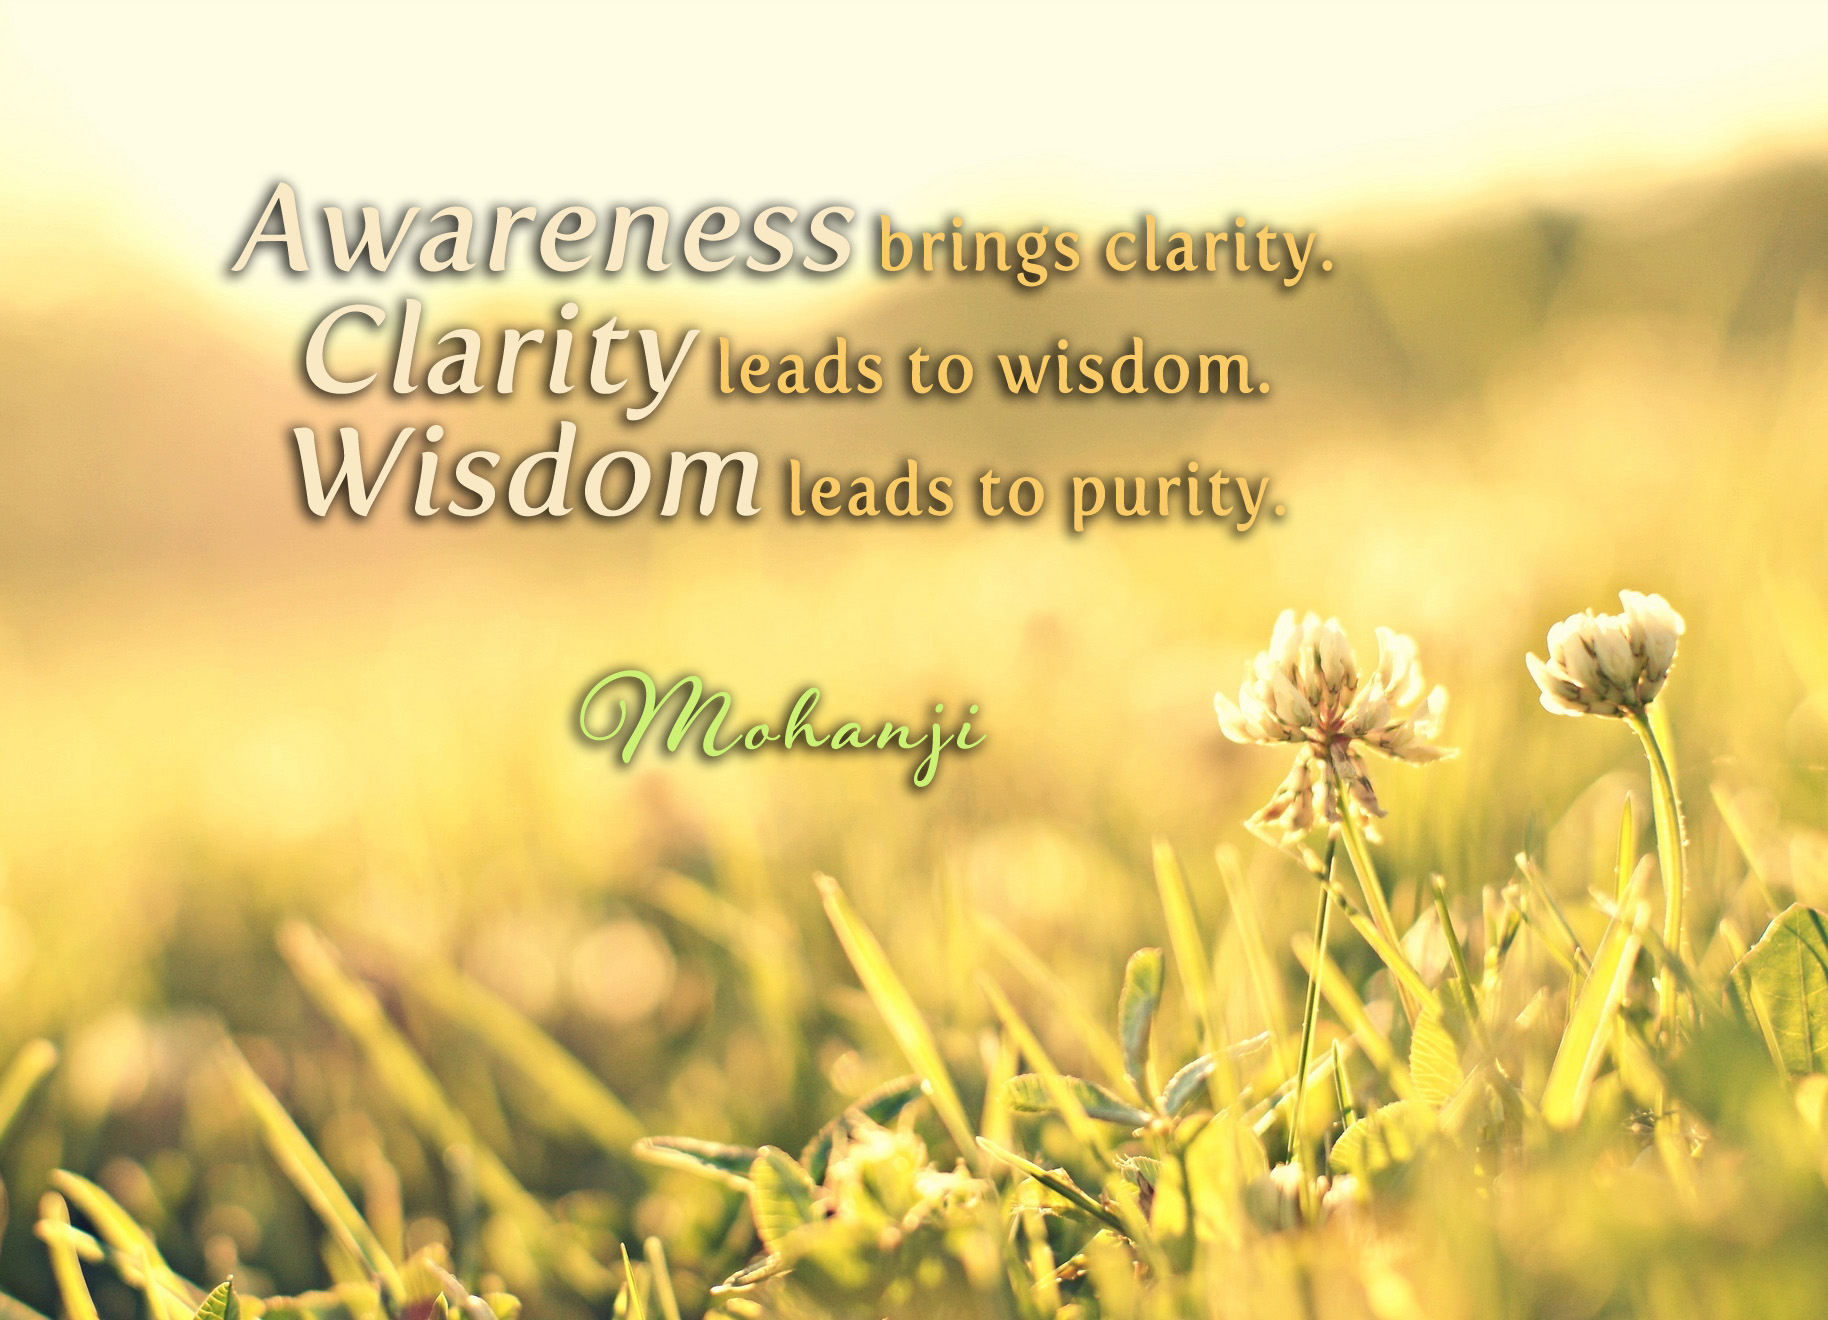 Awareness brings Clarity. Clarity leads to wisdom. Wisdom leads to purity. Mohanji